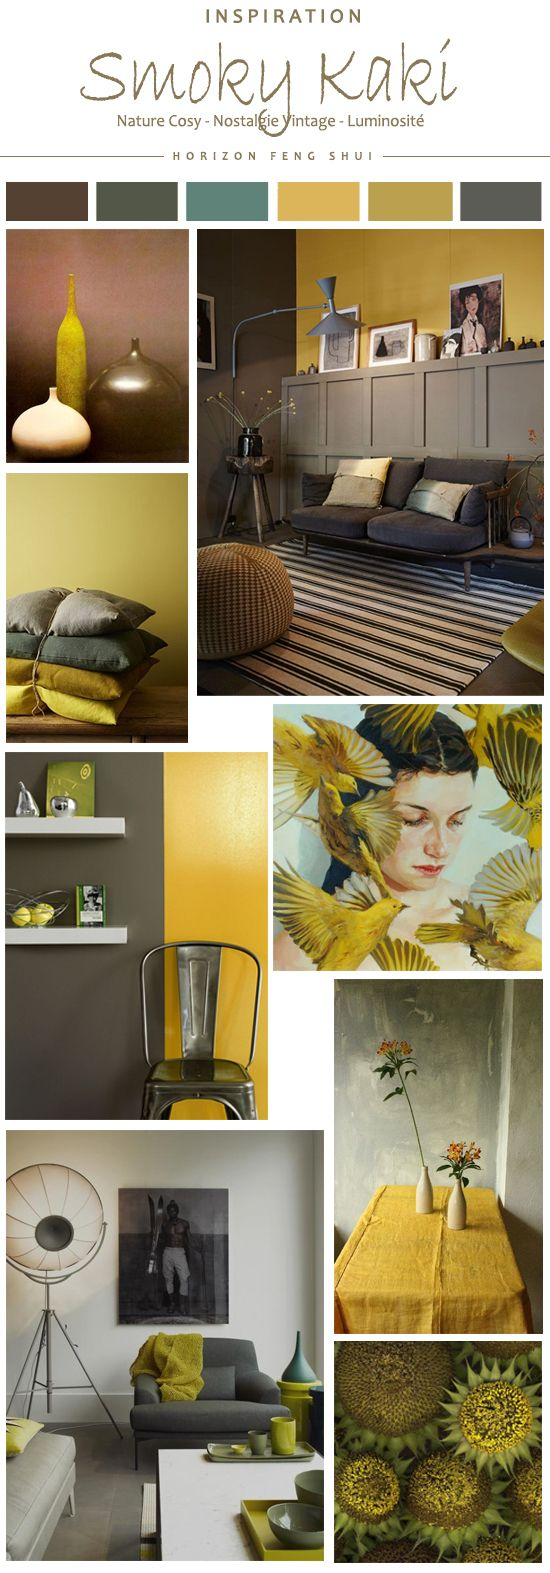 Deco Gris Jaune Moutarde tendance couleur : smoky kaki jaune moutarde ocre gris